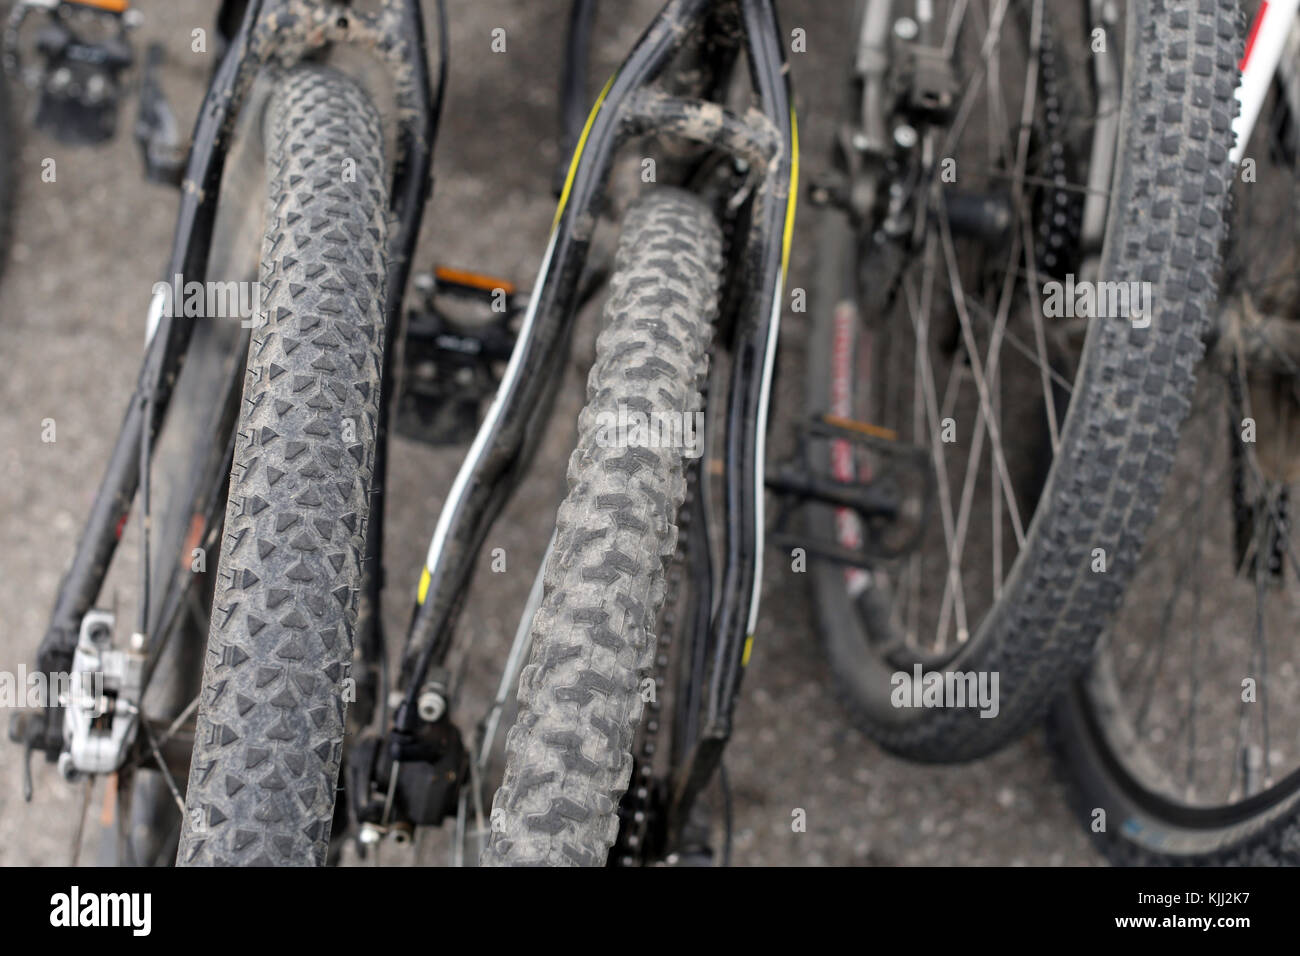 Mountain bike with spiked tires. France. - Stock Image